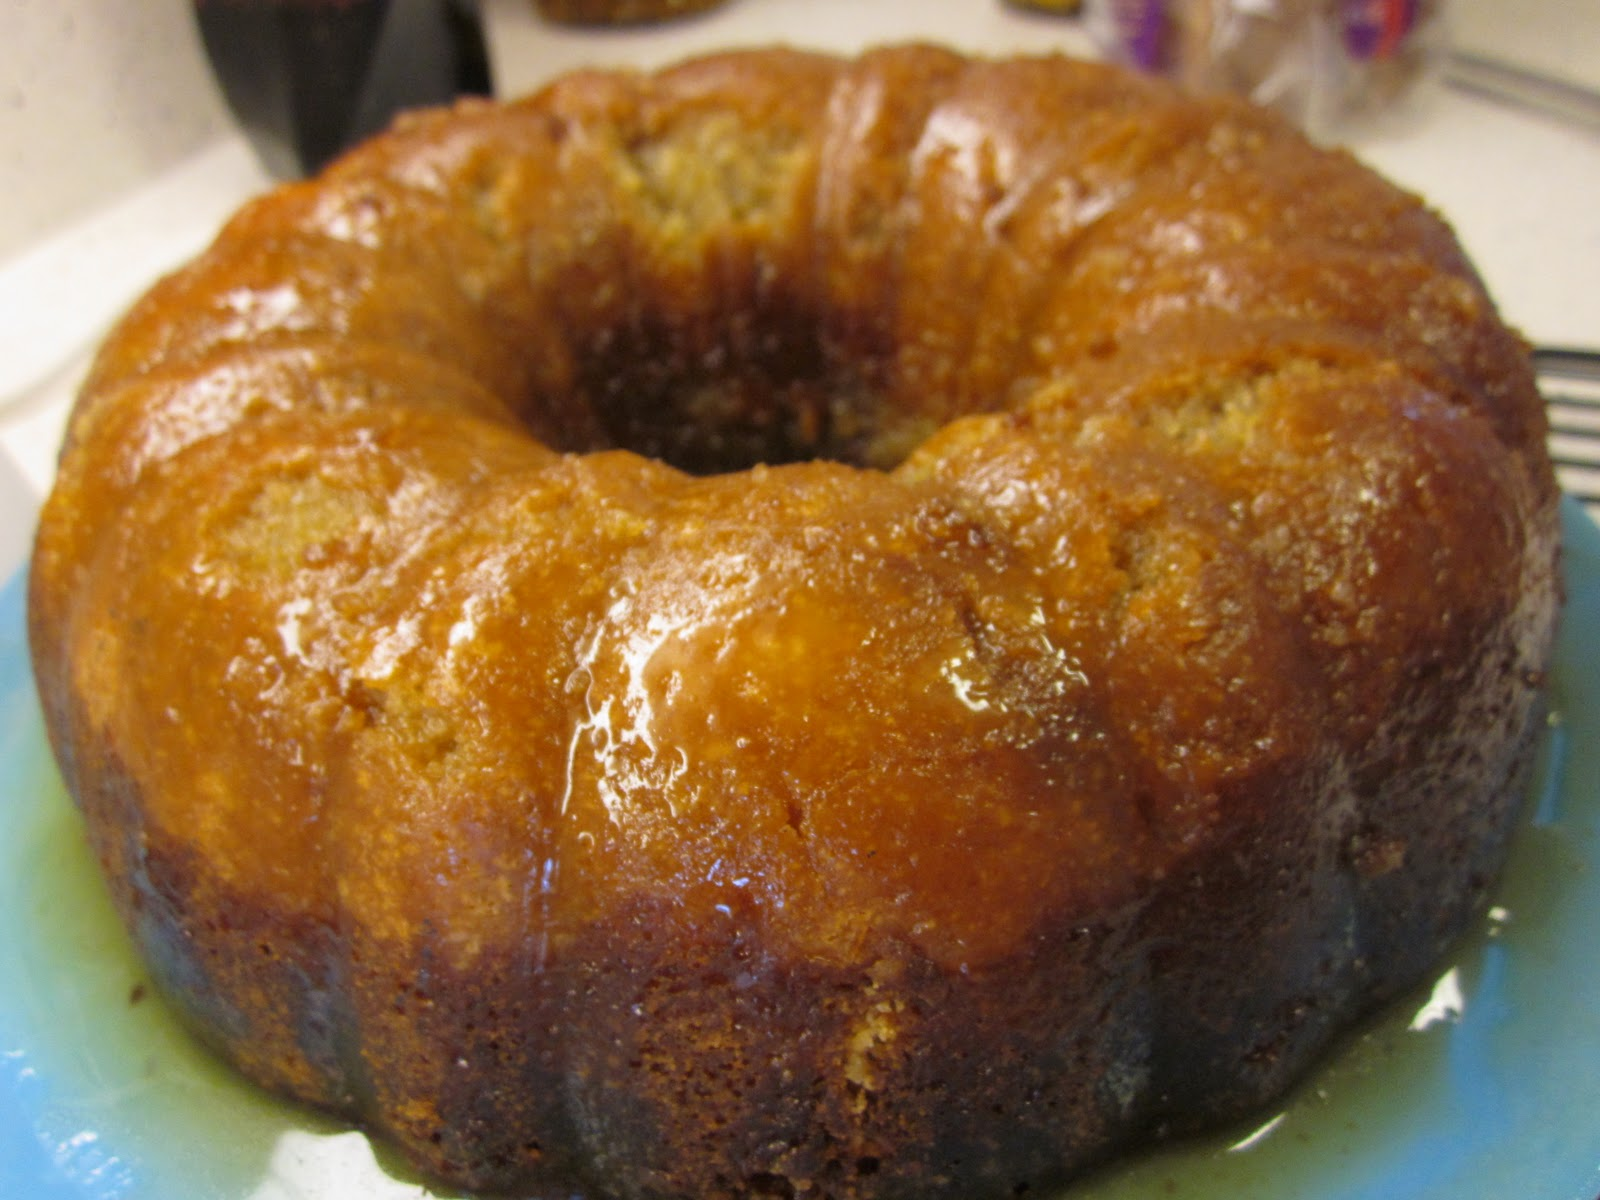 ... Marvelous Munchies: Pecan Molasses Bundt Cake with Bourbon Glaze